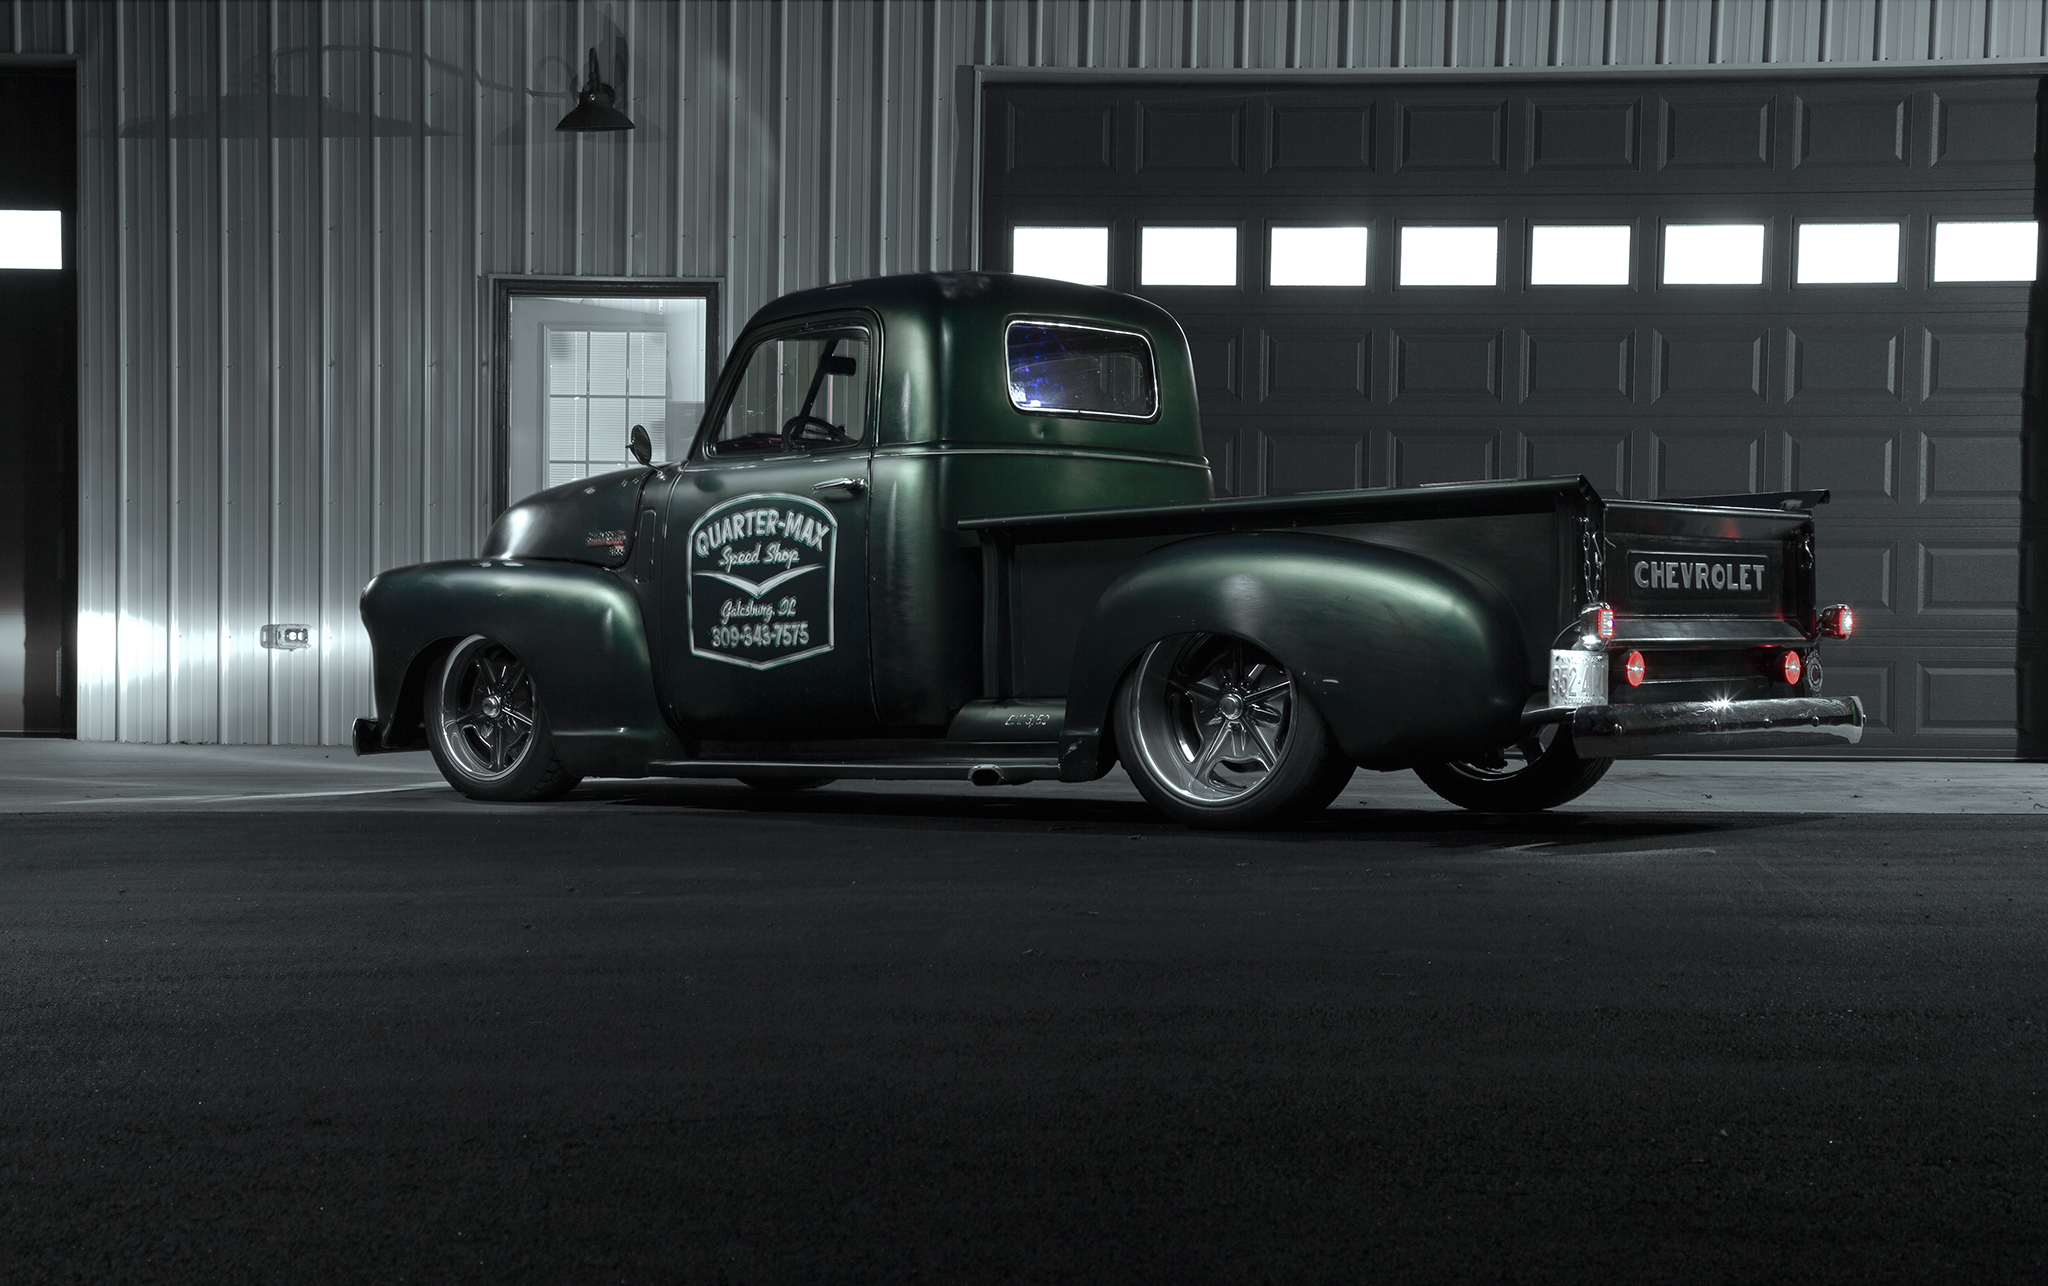 48 Chevy AD truck